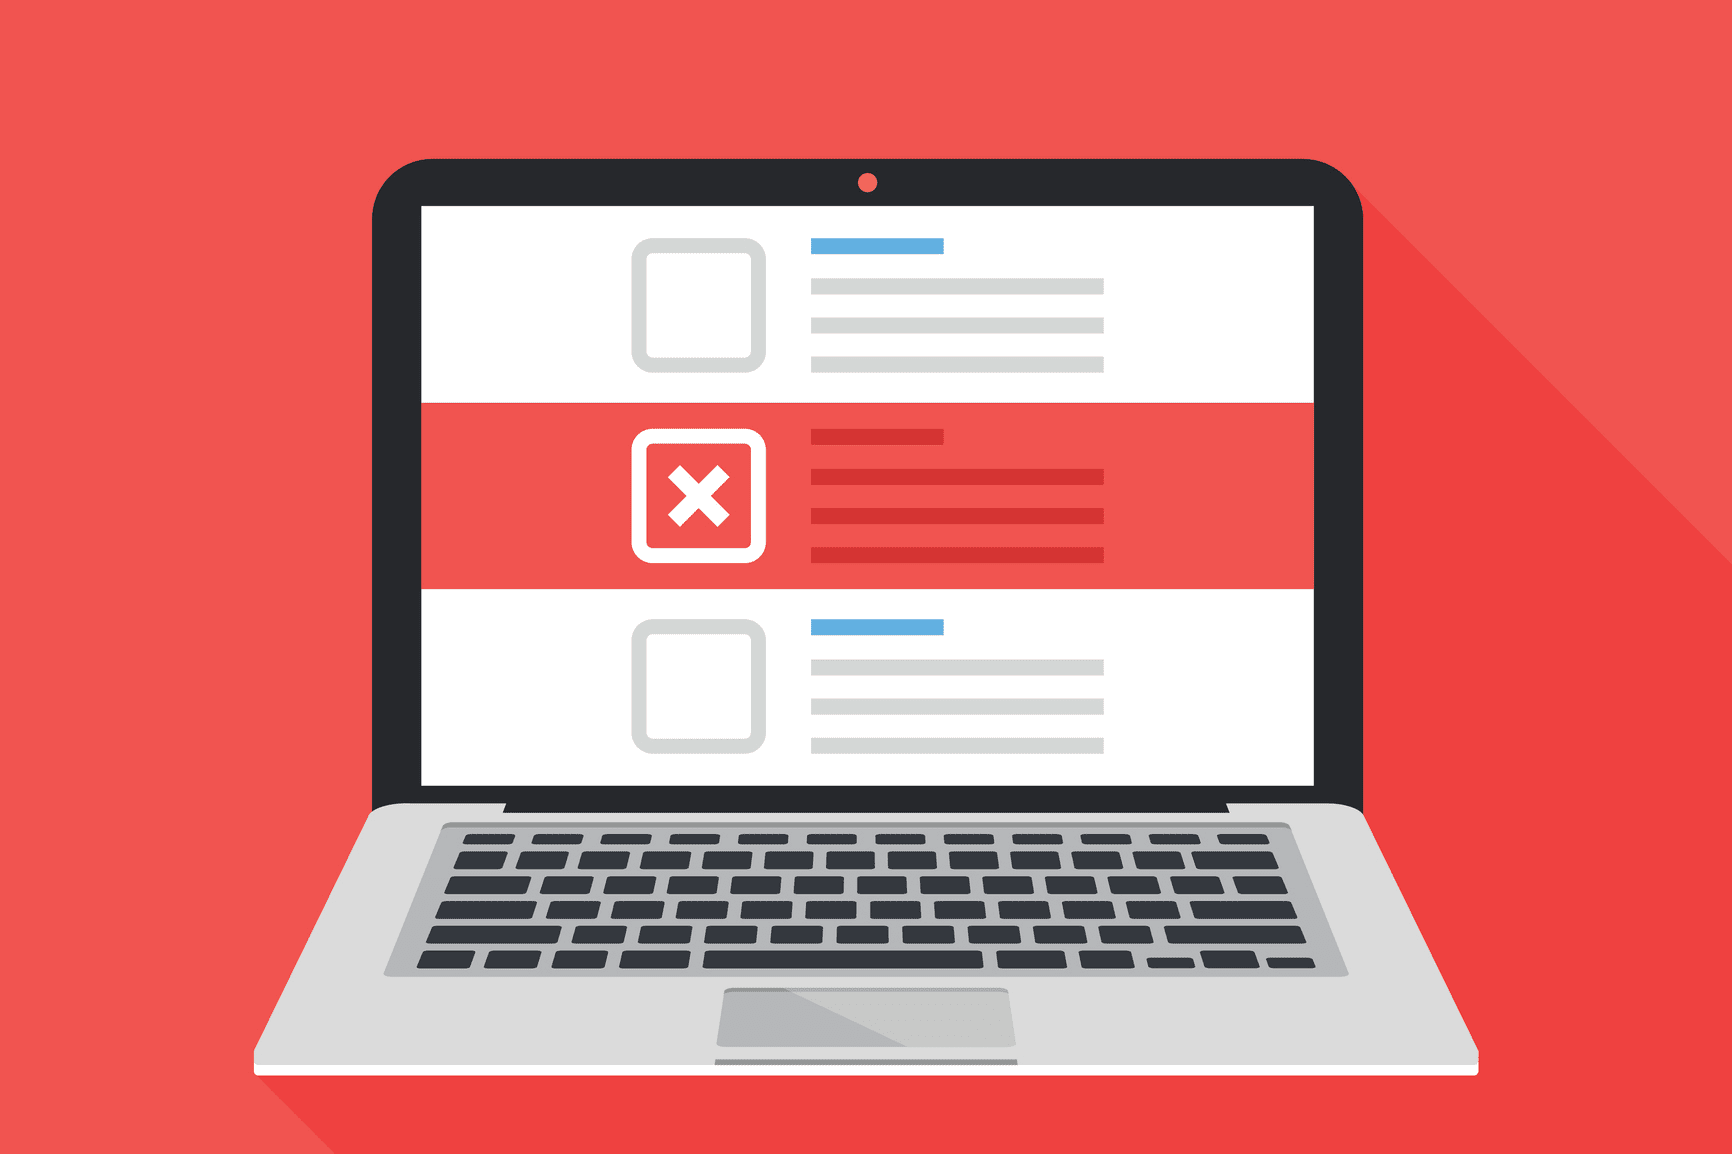 How To Avoid Dangerous Websites And Stay Safe Online